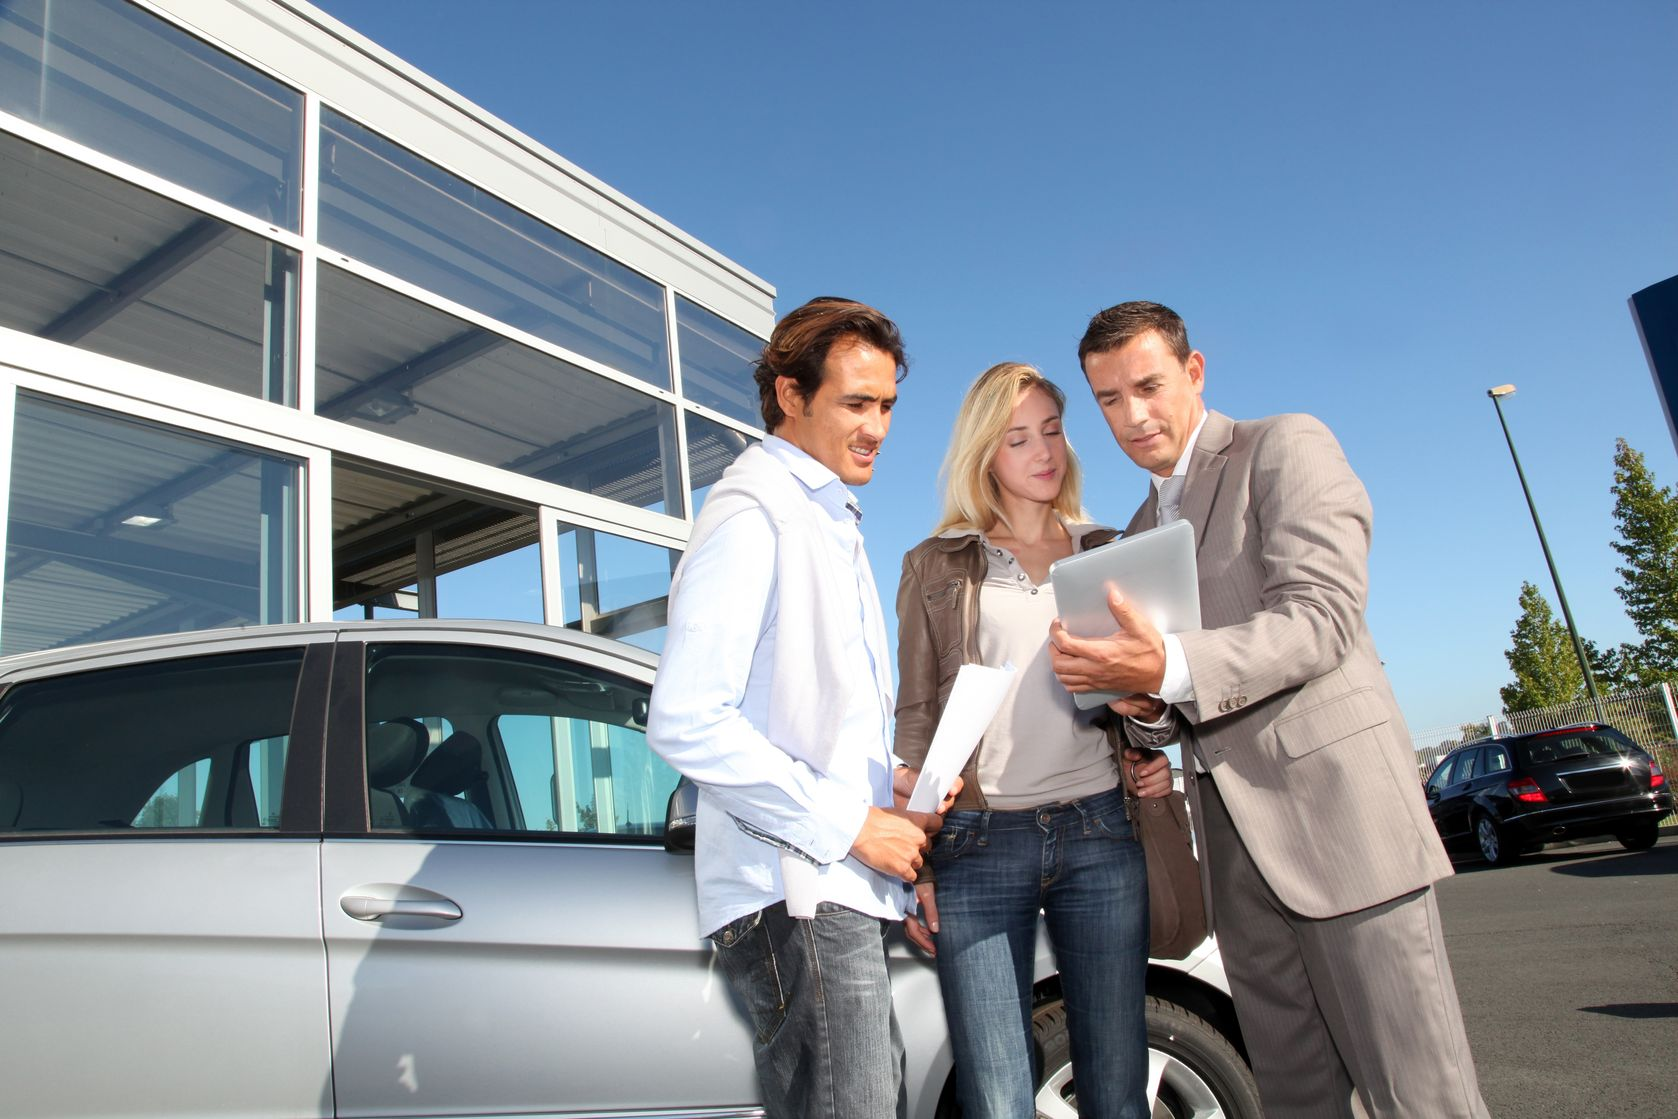 Wauwatosa Auto Dealers Insurance